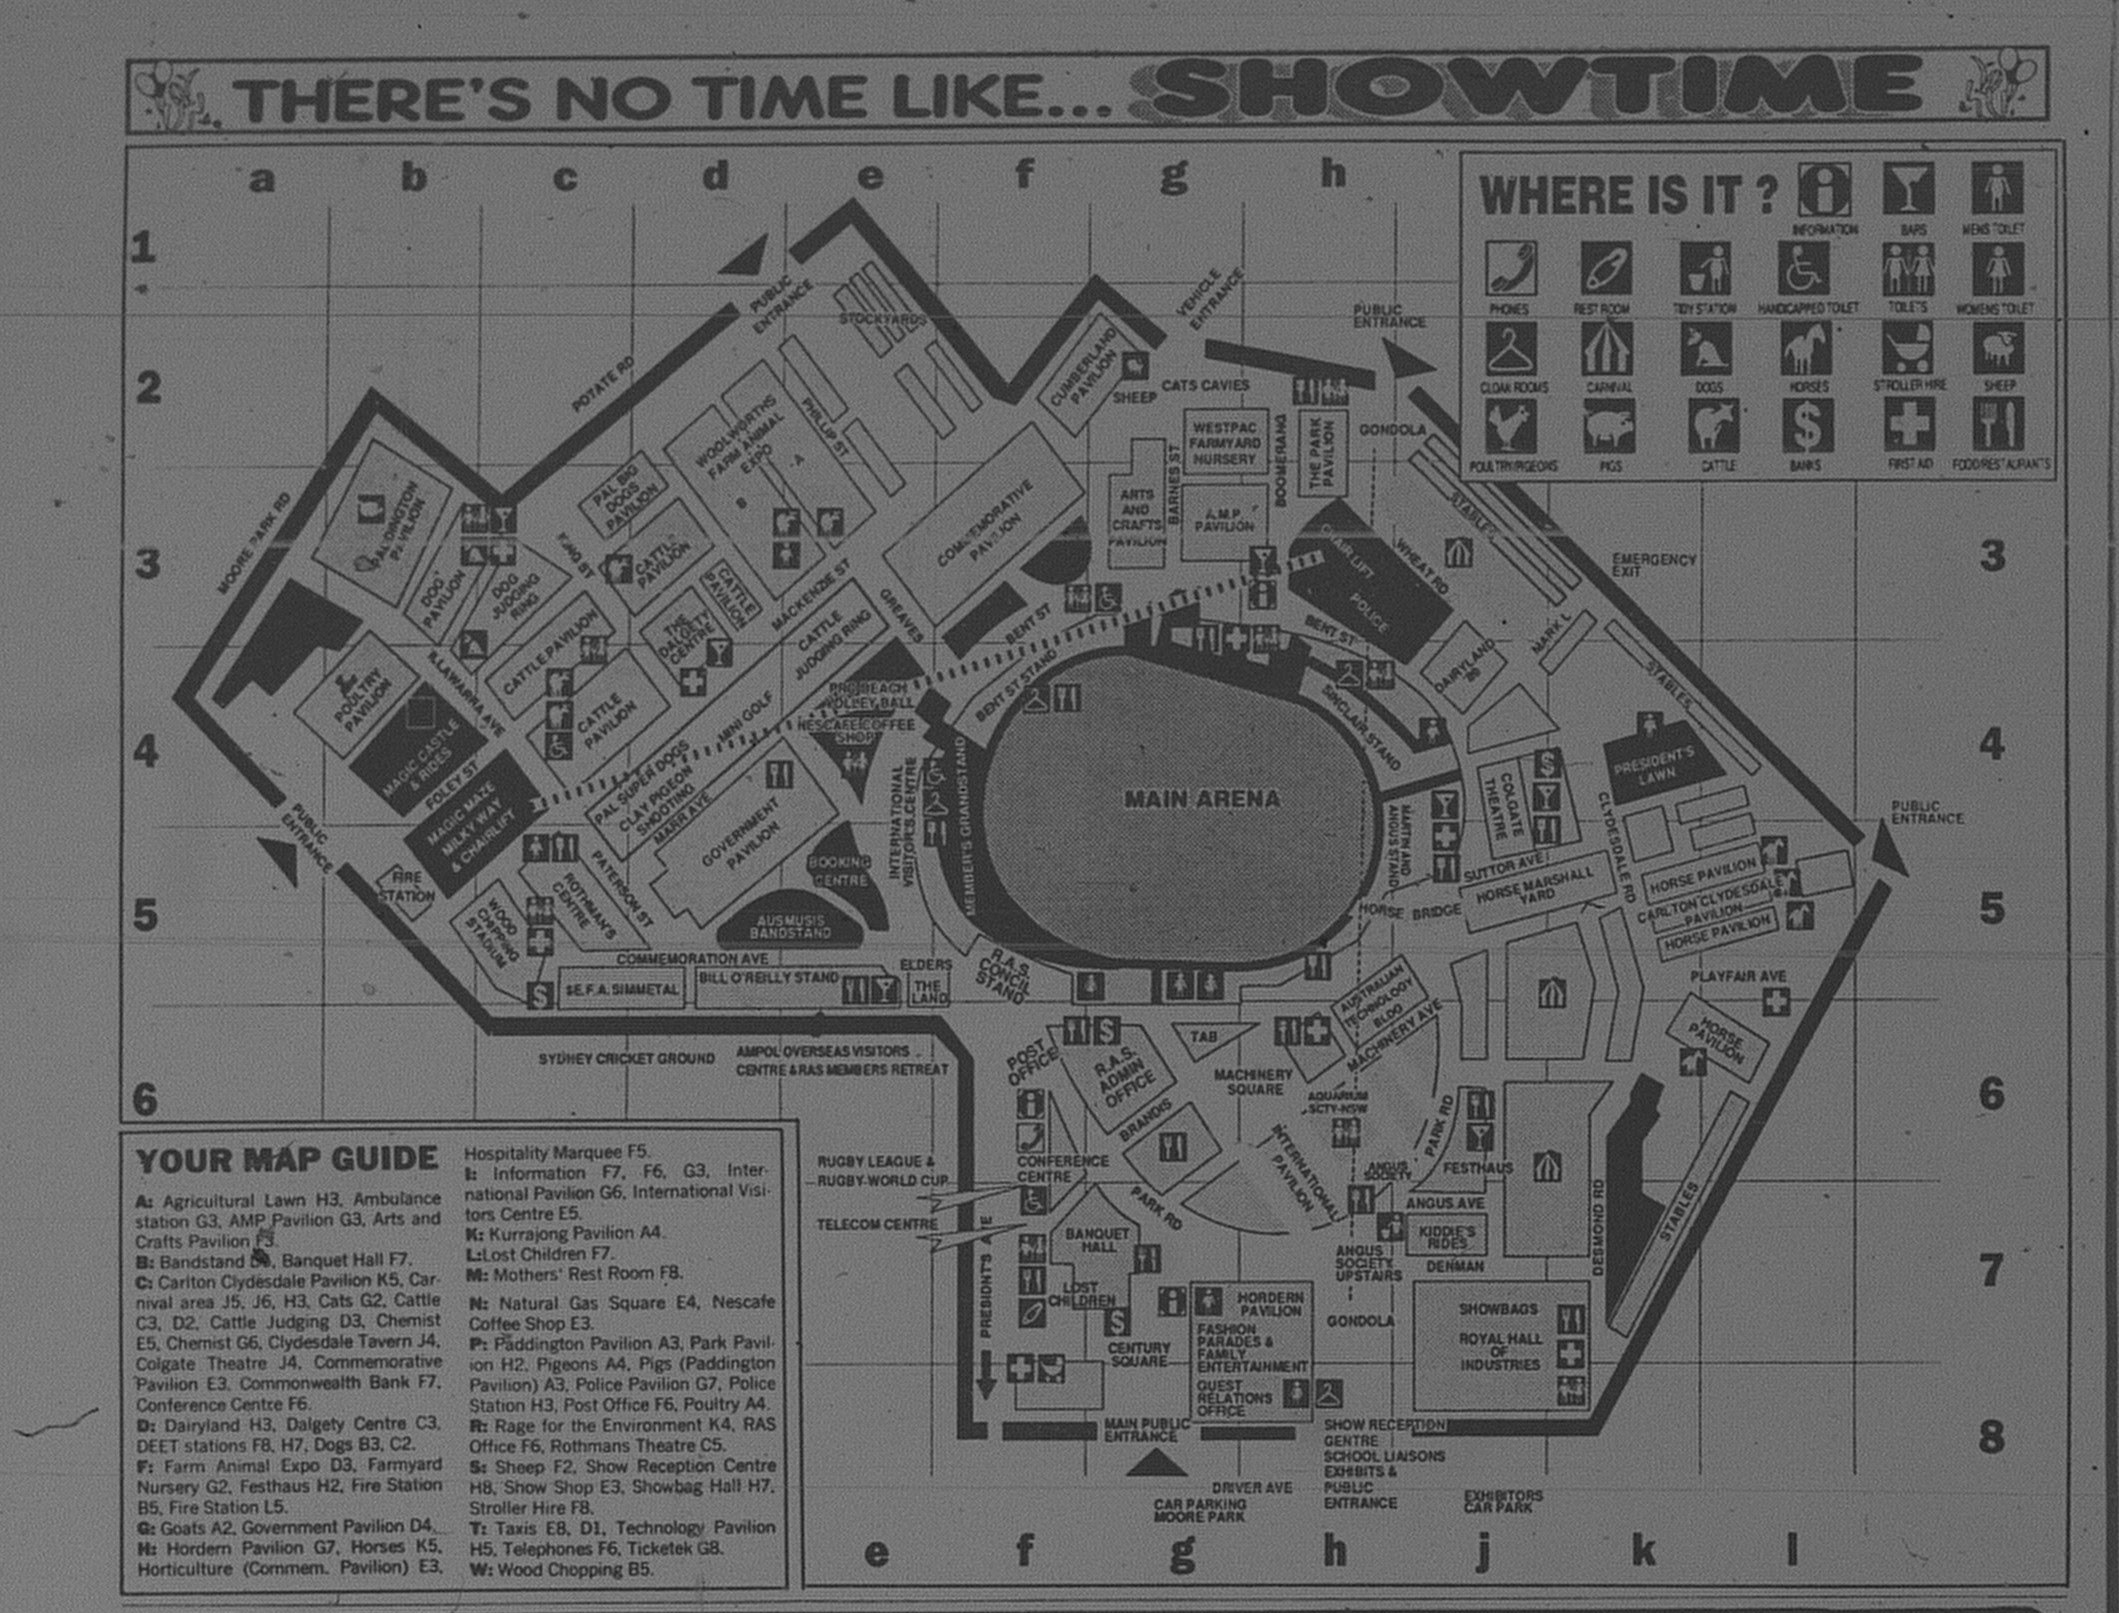 Easter Show Preview April 8 1992 daily telegraph (3) - Easter Show Map - Page 48